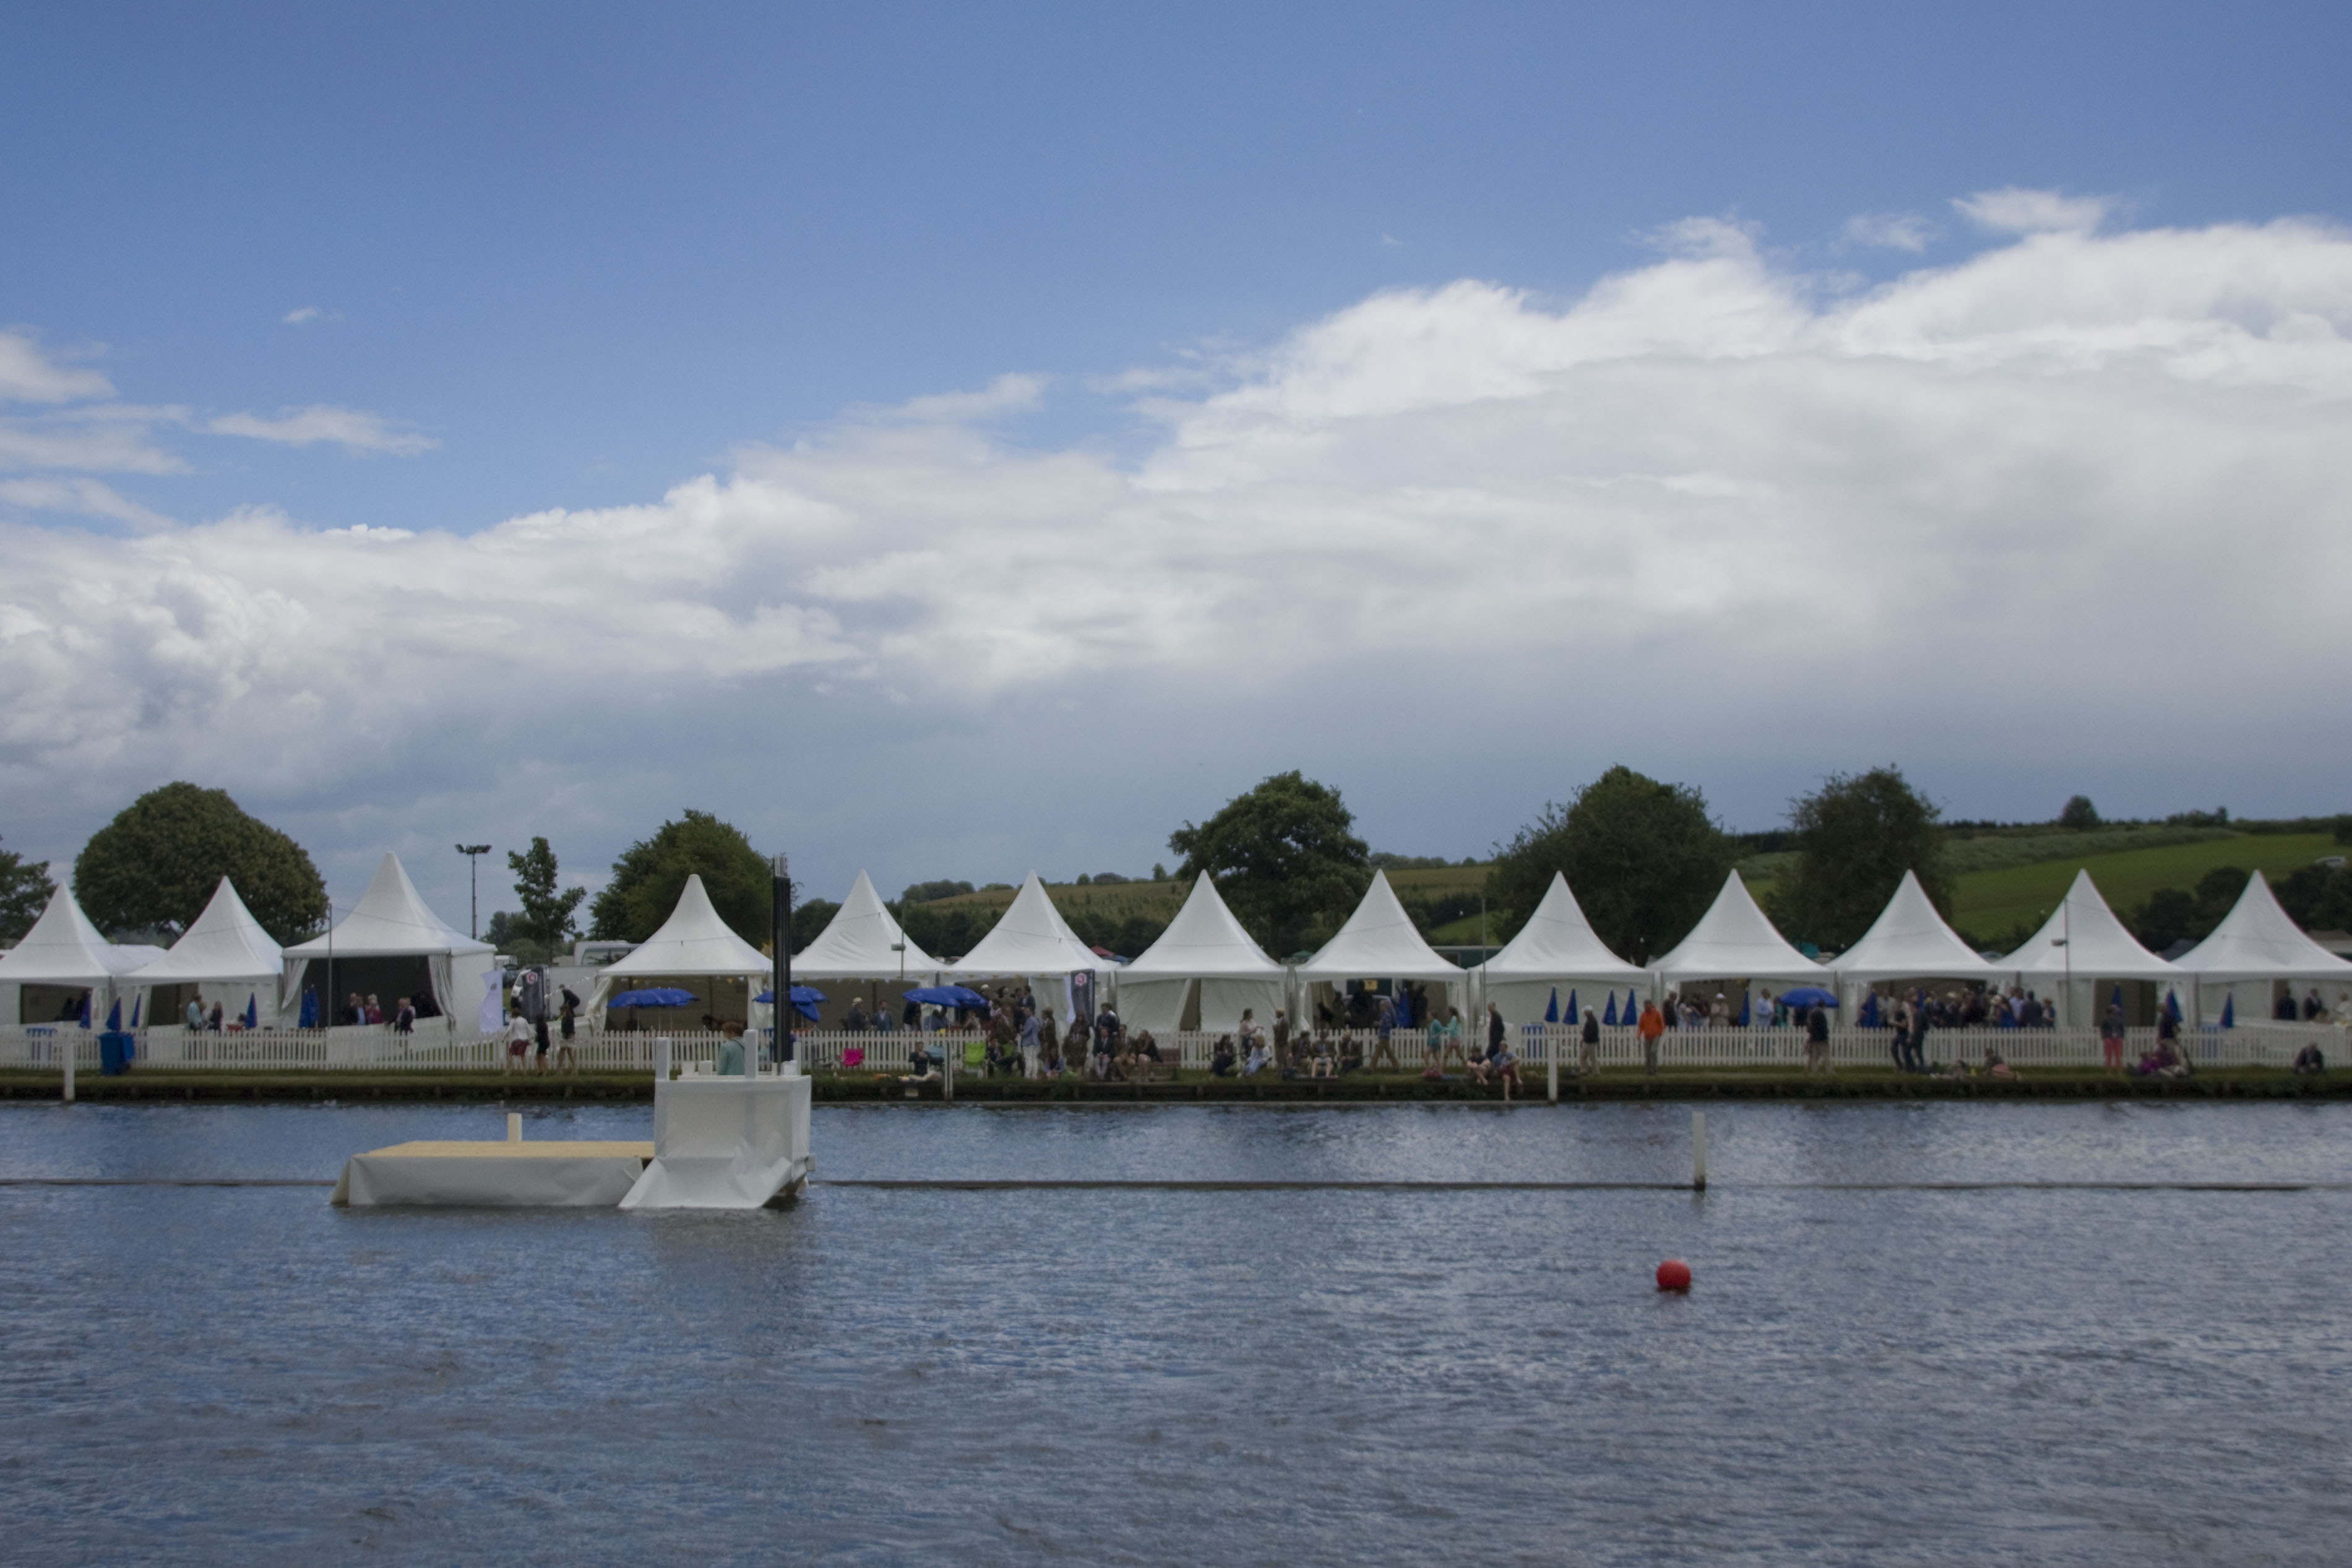 pavilions-row-from-river.jpg